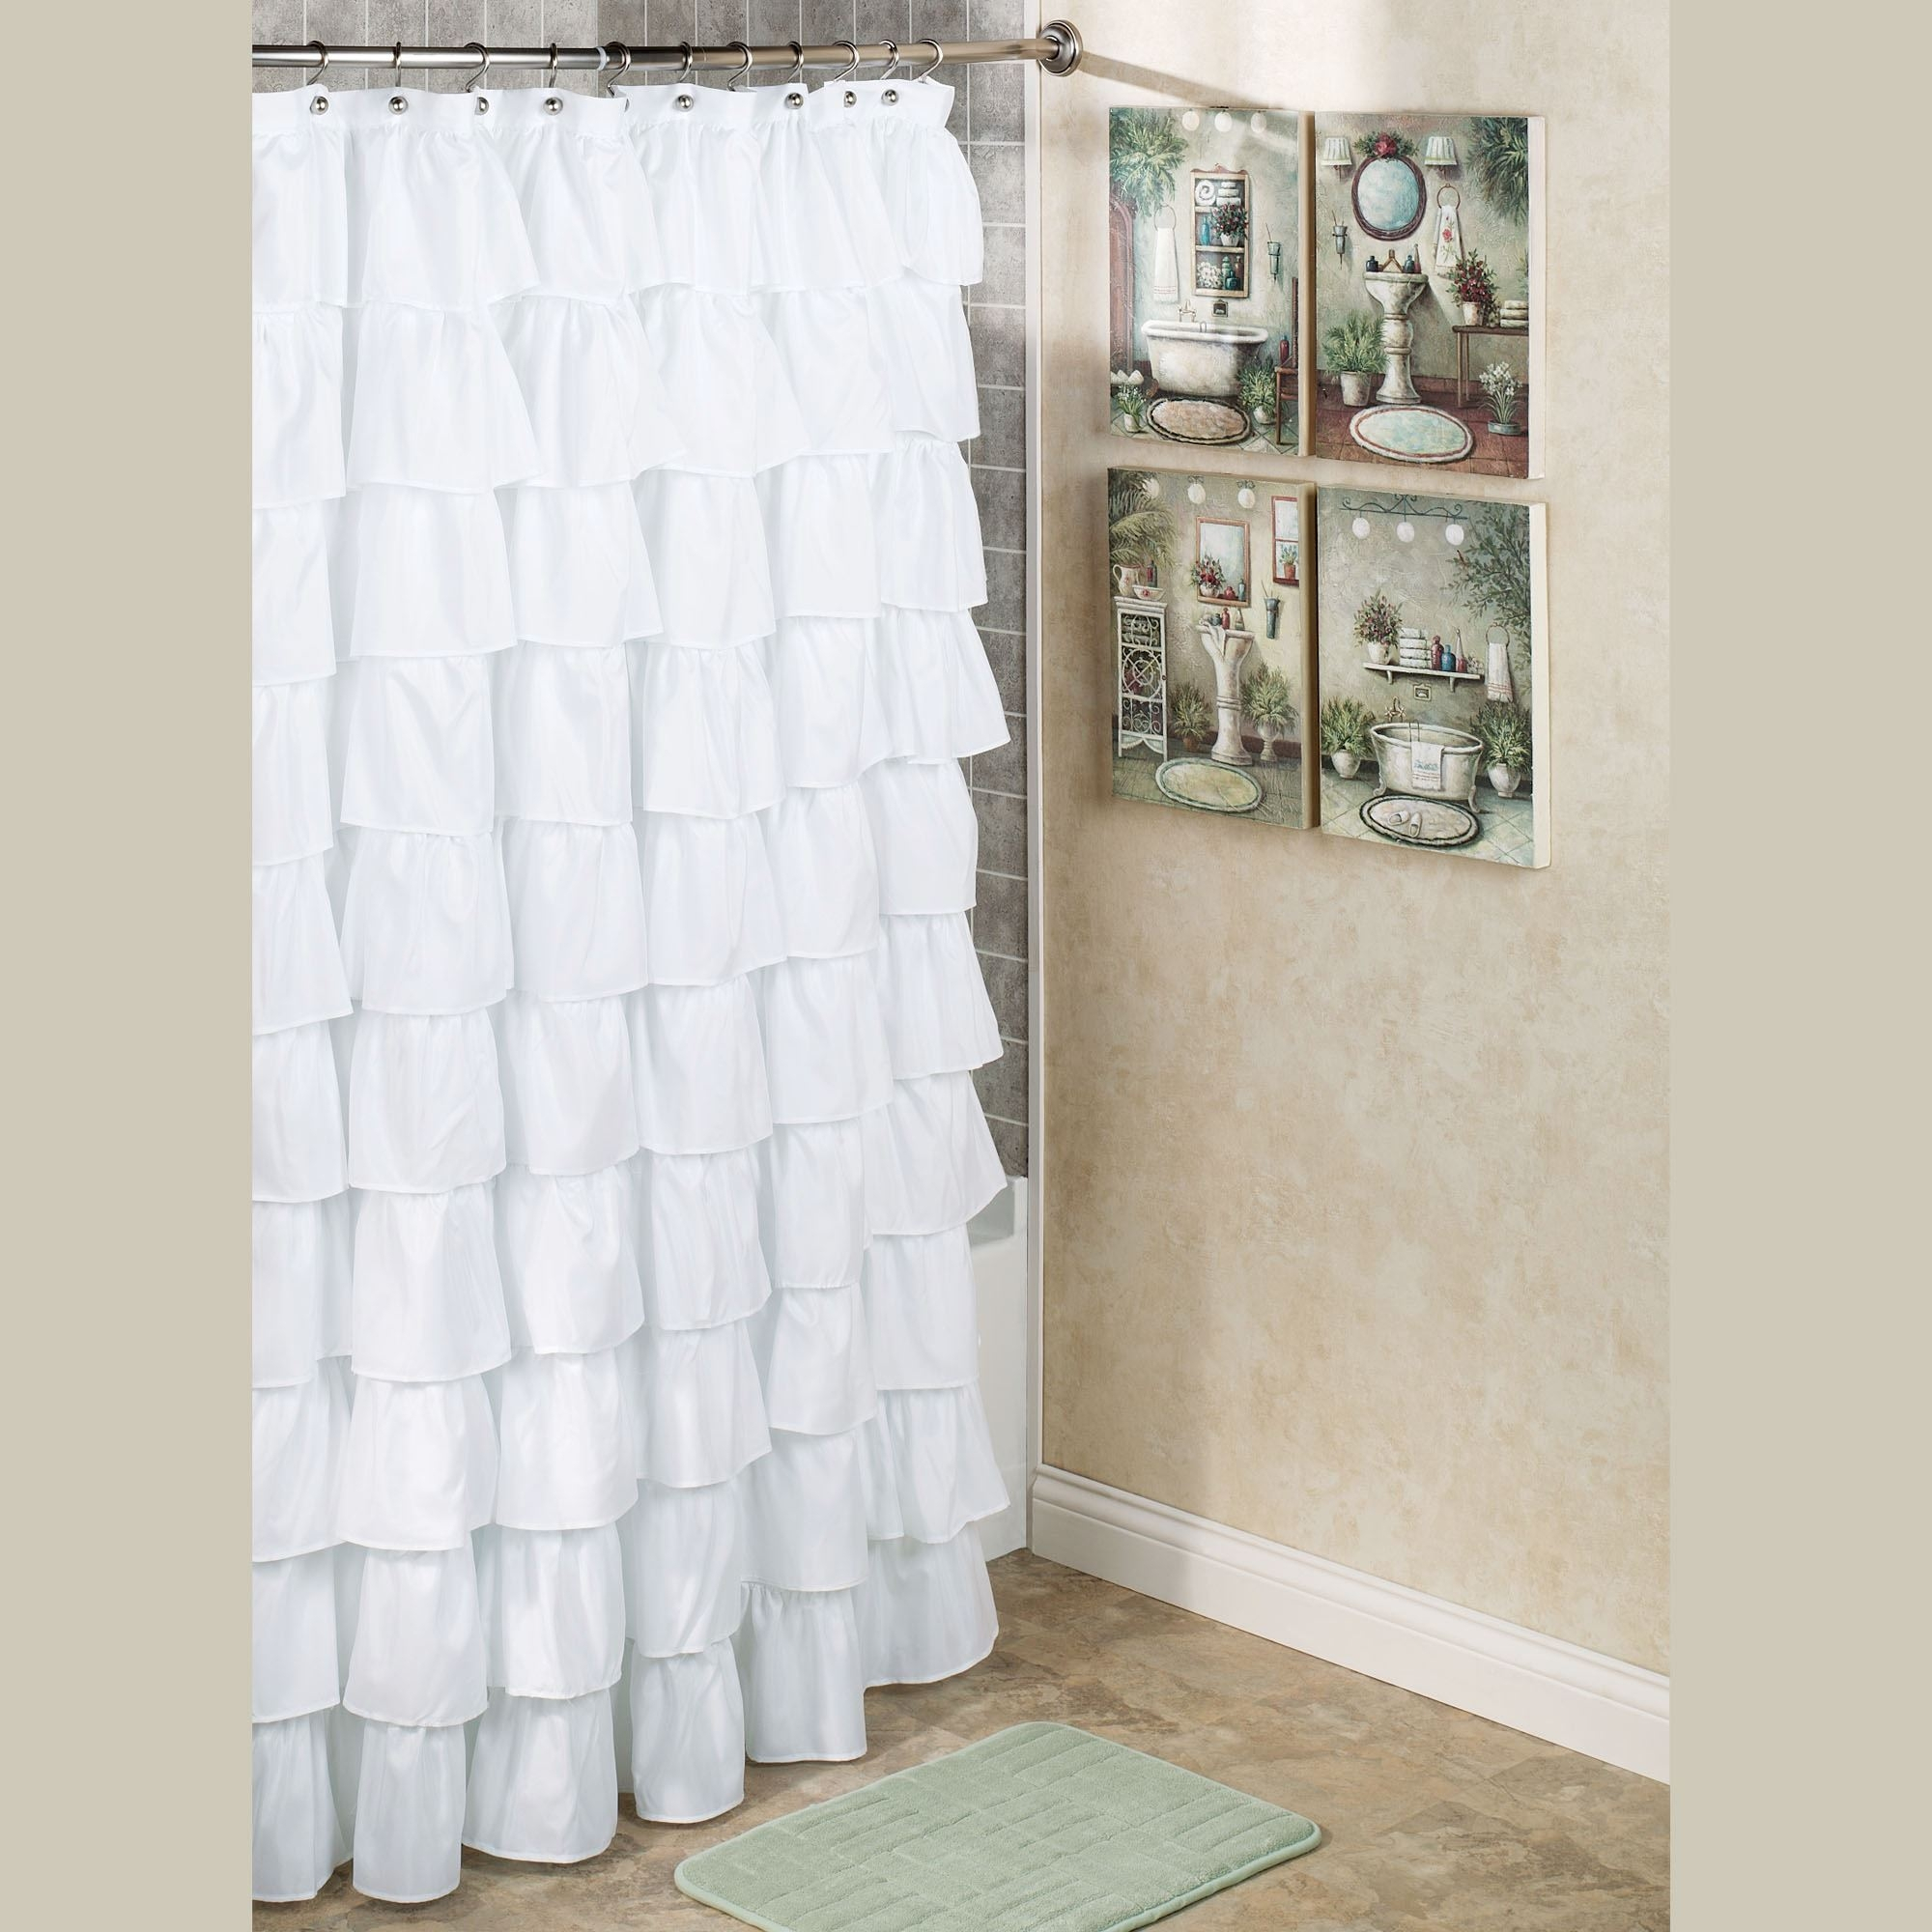 White Ruffle Shower Curtain Anthropologie Ideas Within Size 2000 X